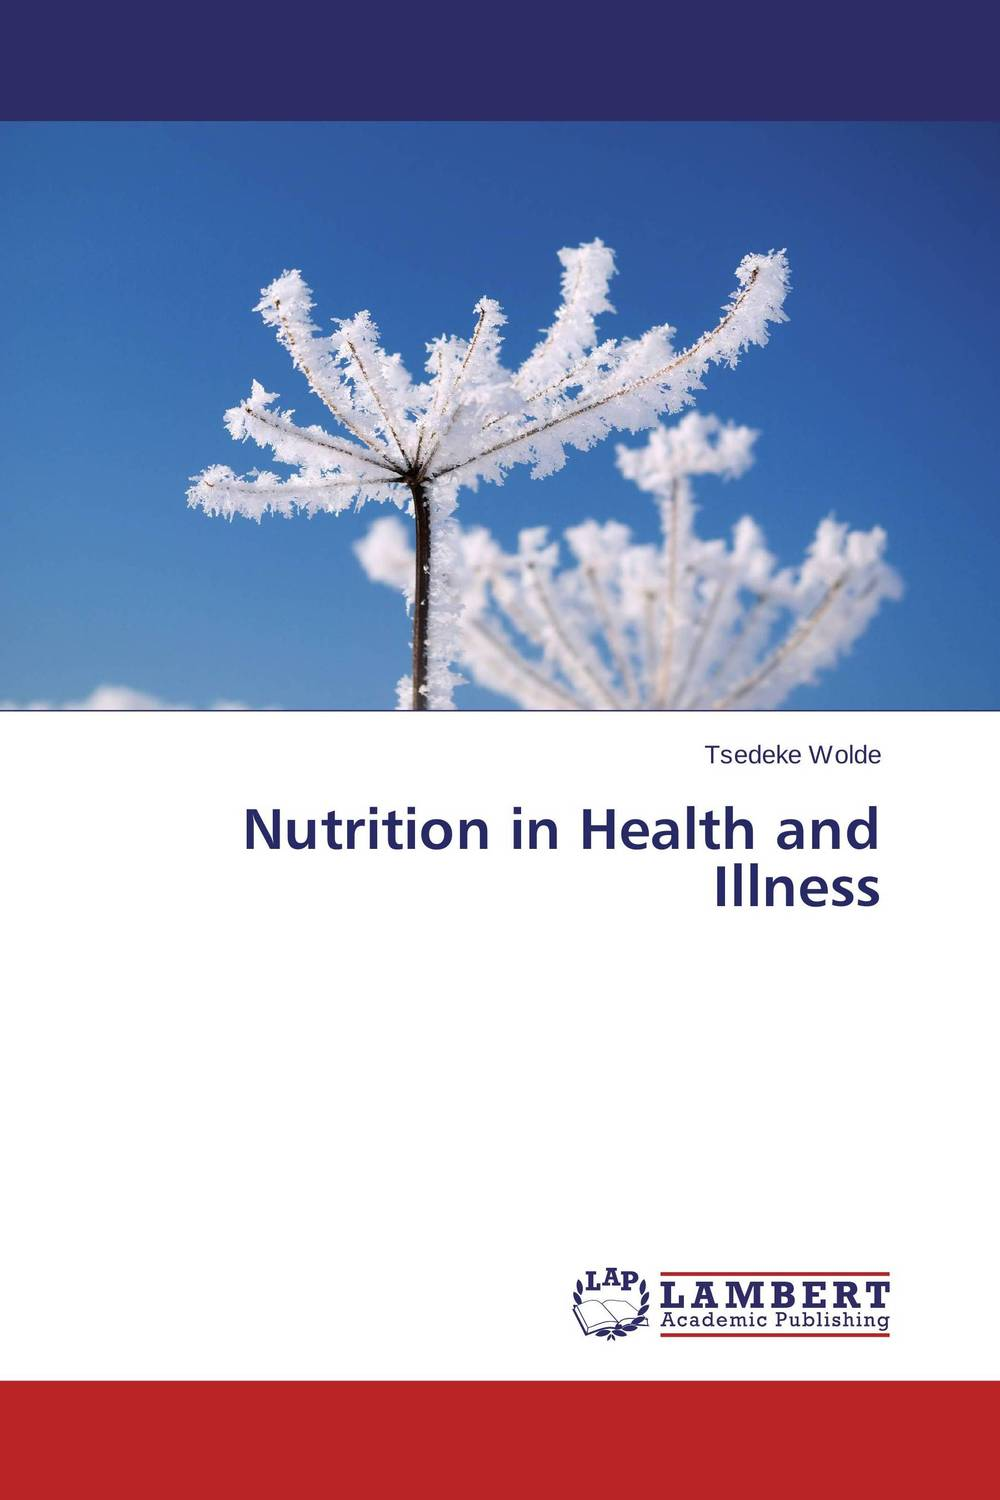 Nutrition in Health and Illness nutrition status and food consumption pattern of children with cancer